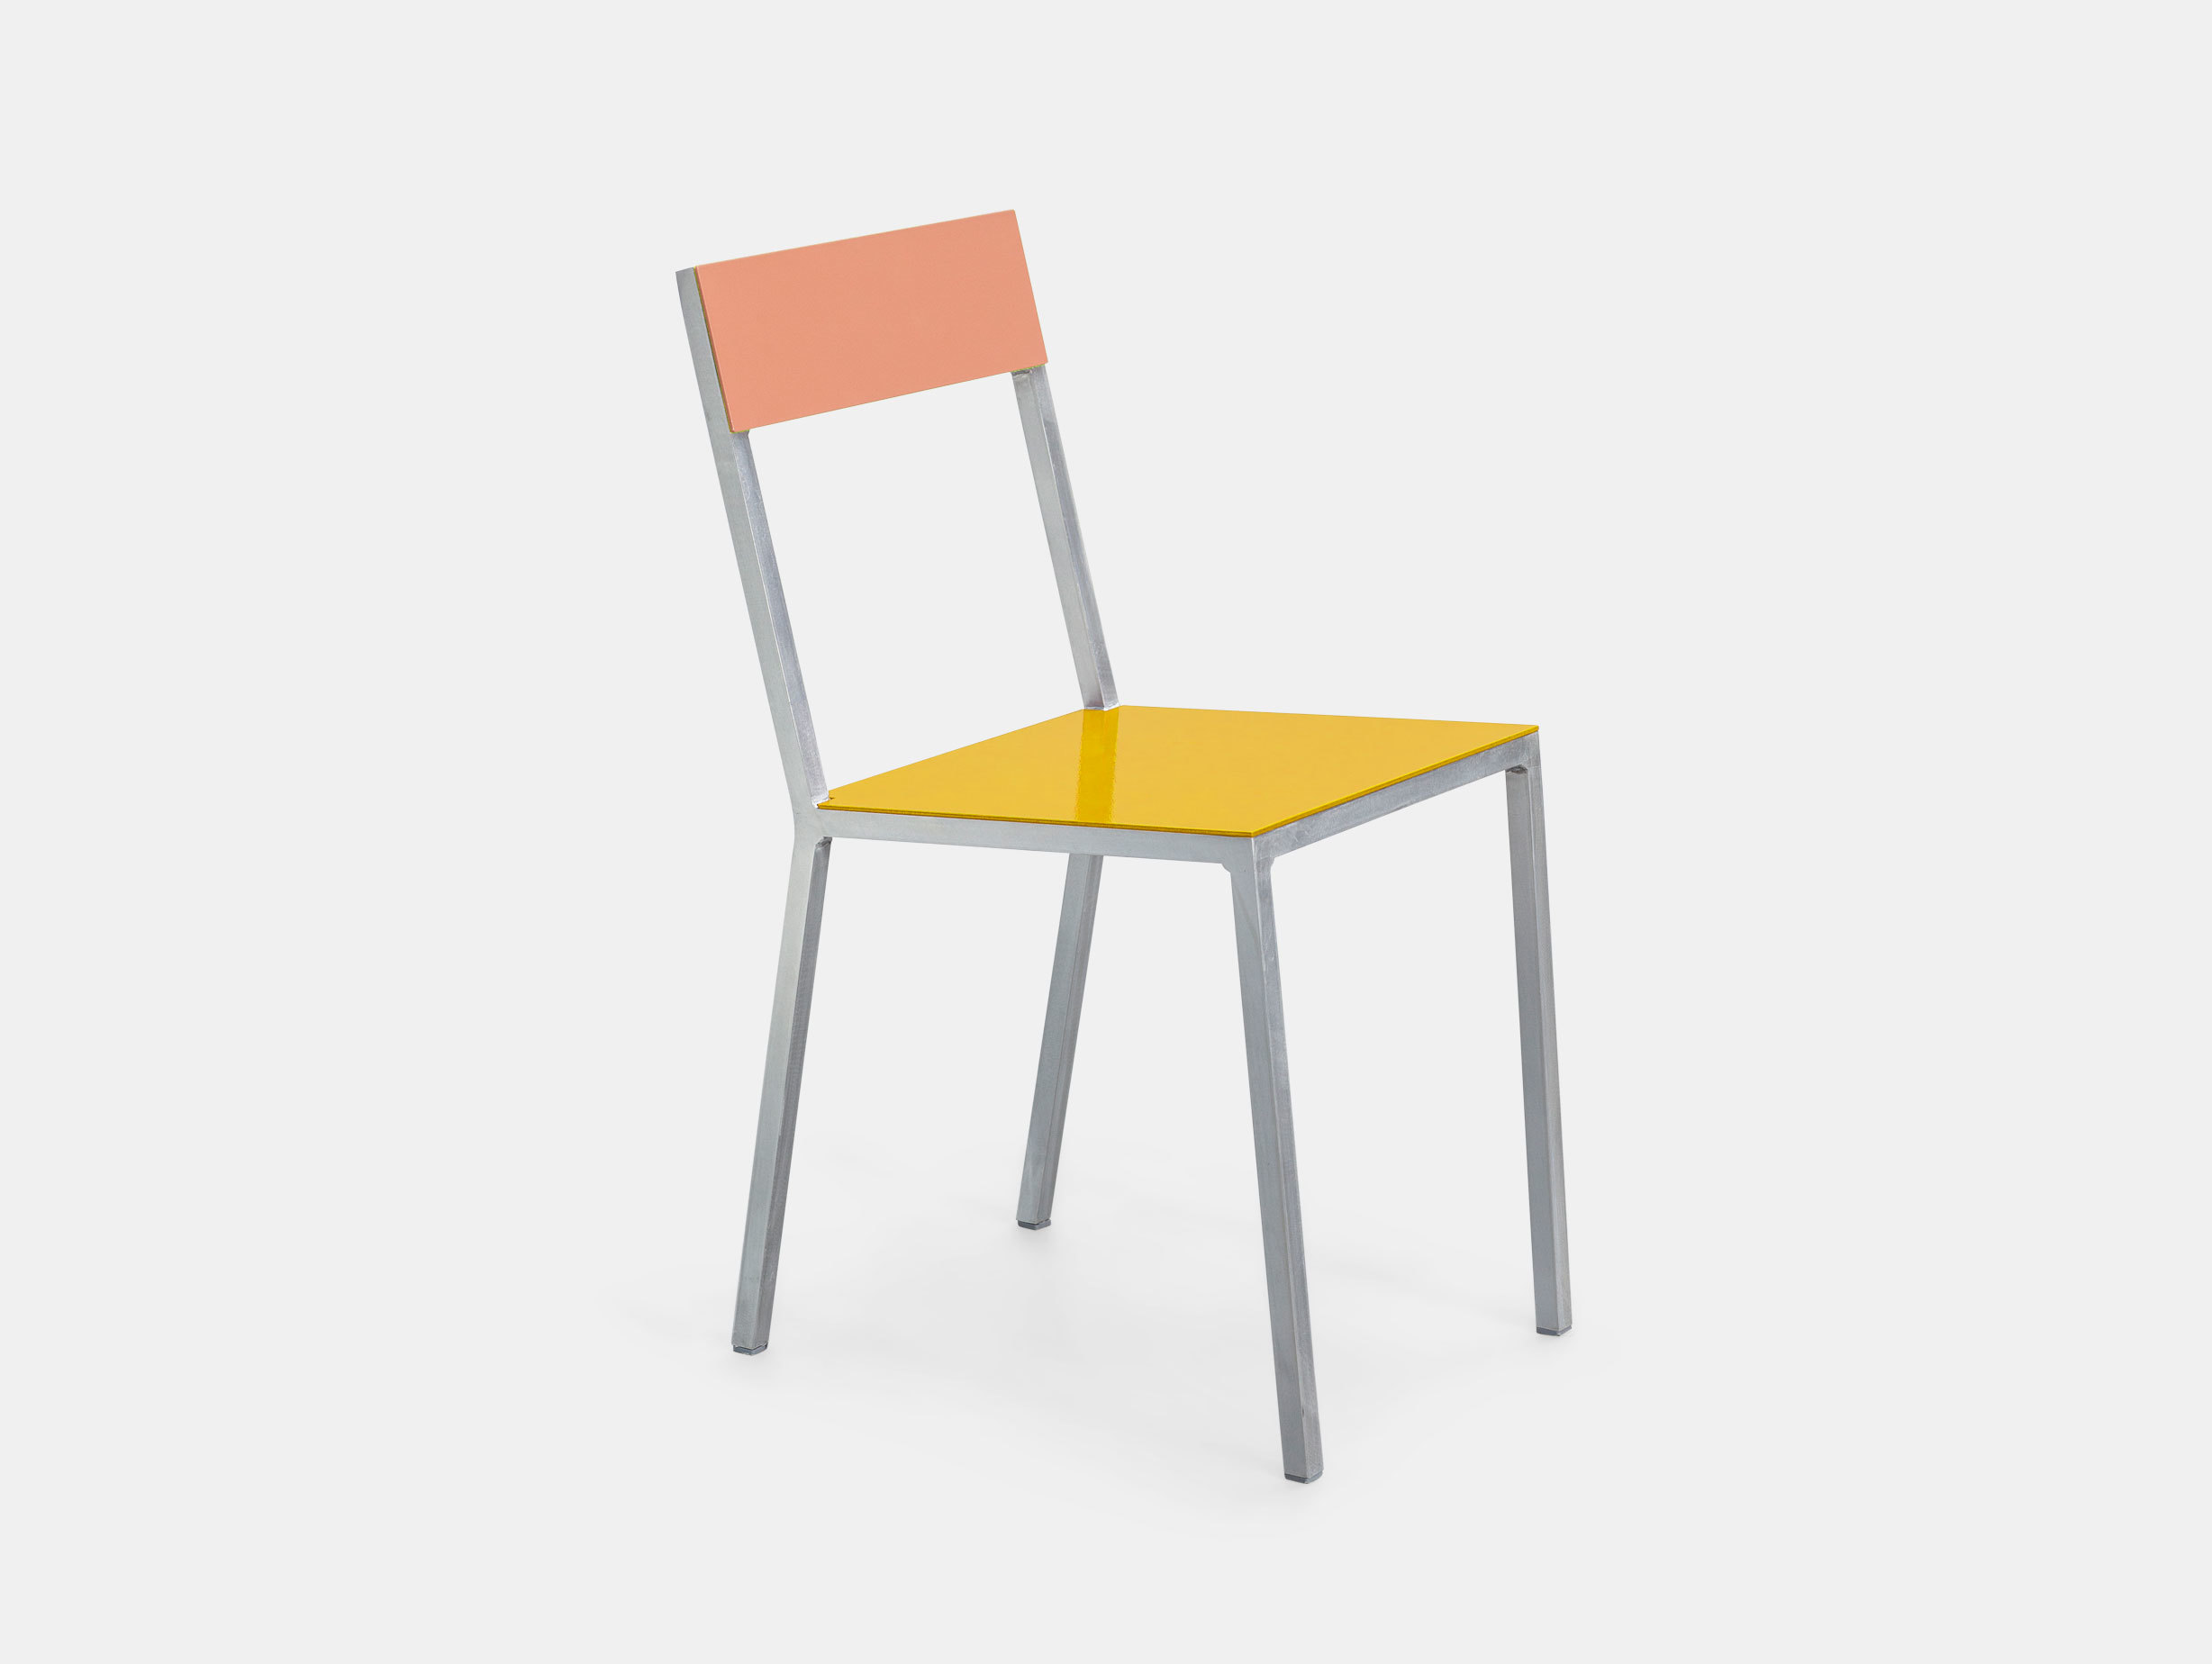 Valerie Objects Alu Chair Pink Yellow Muller Van Severen